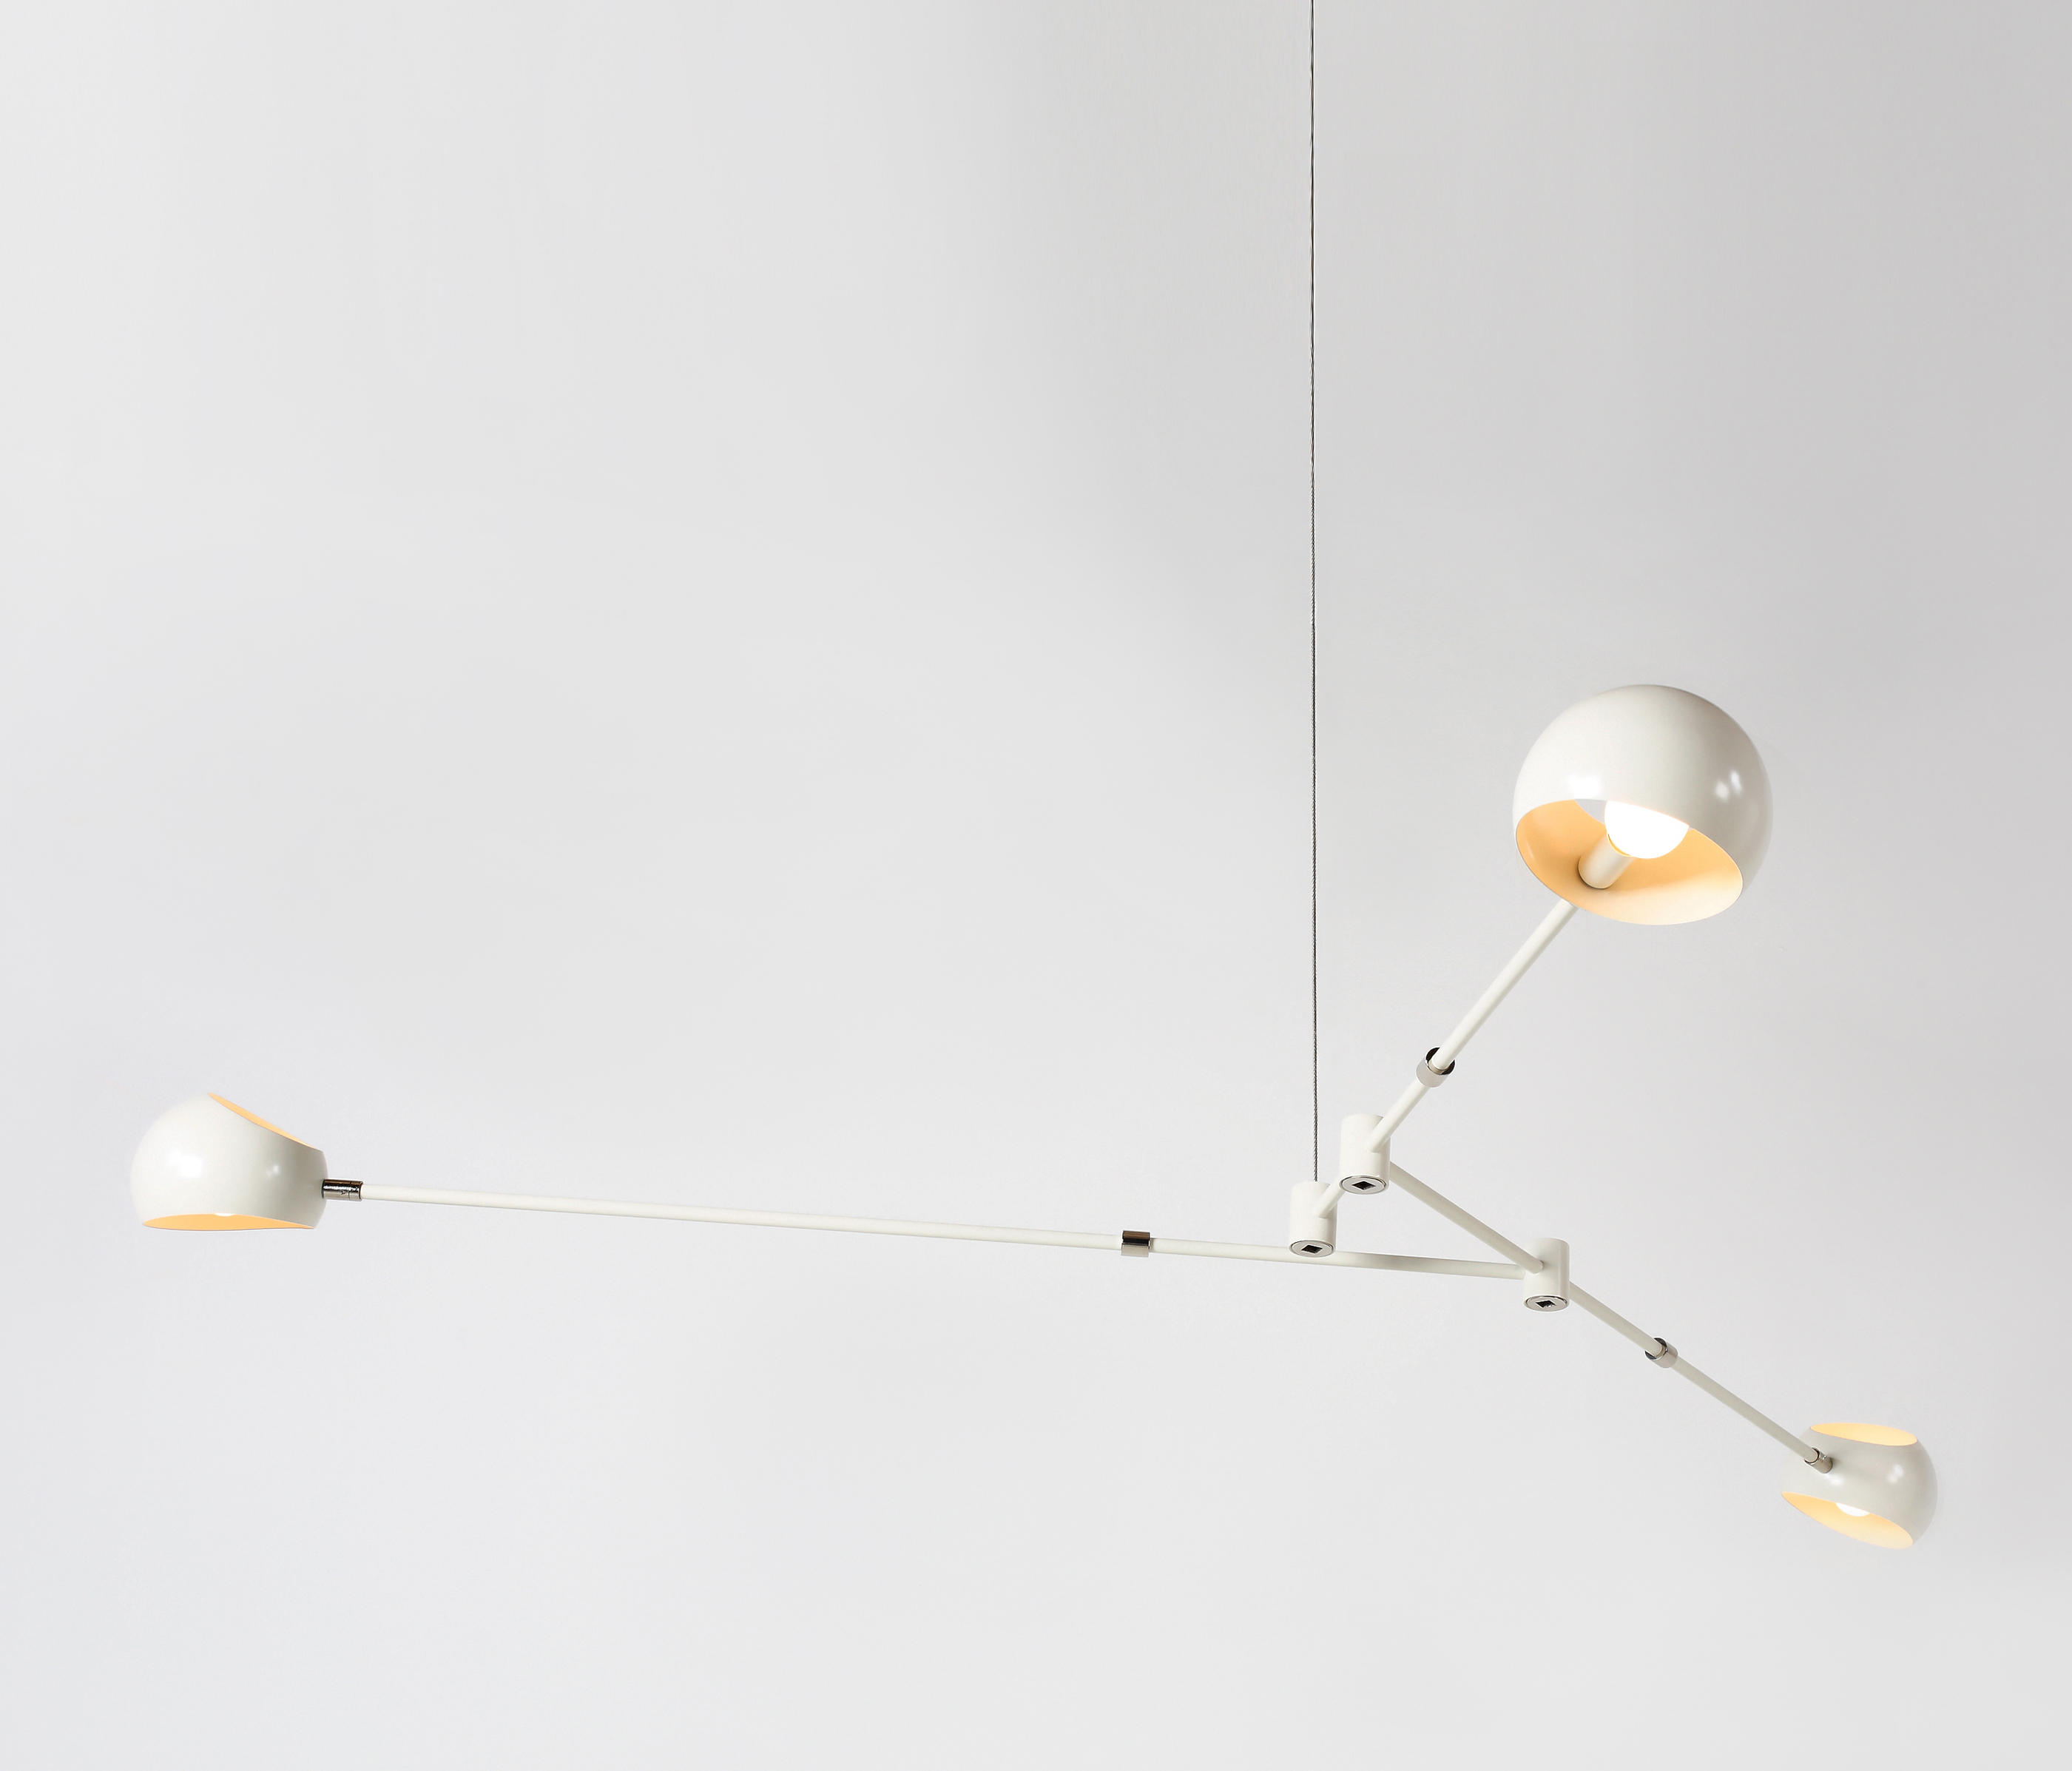 Oseo No 427 By David Weeks Studio Suspended Lights